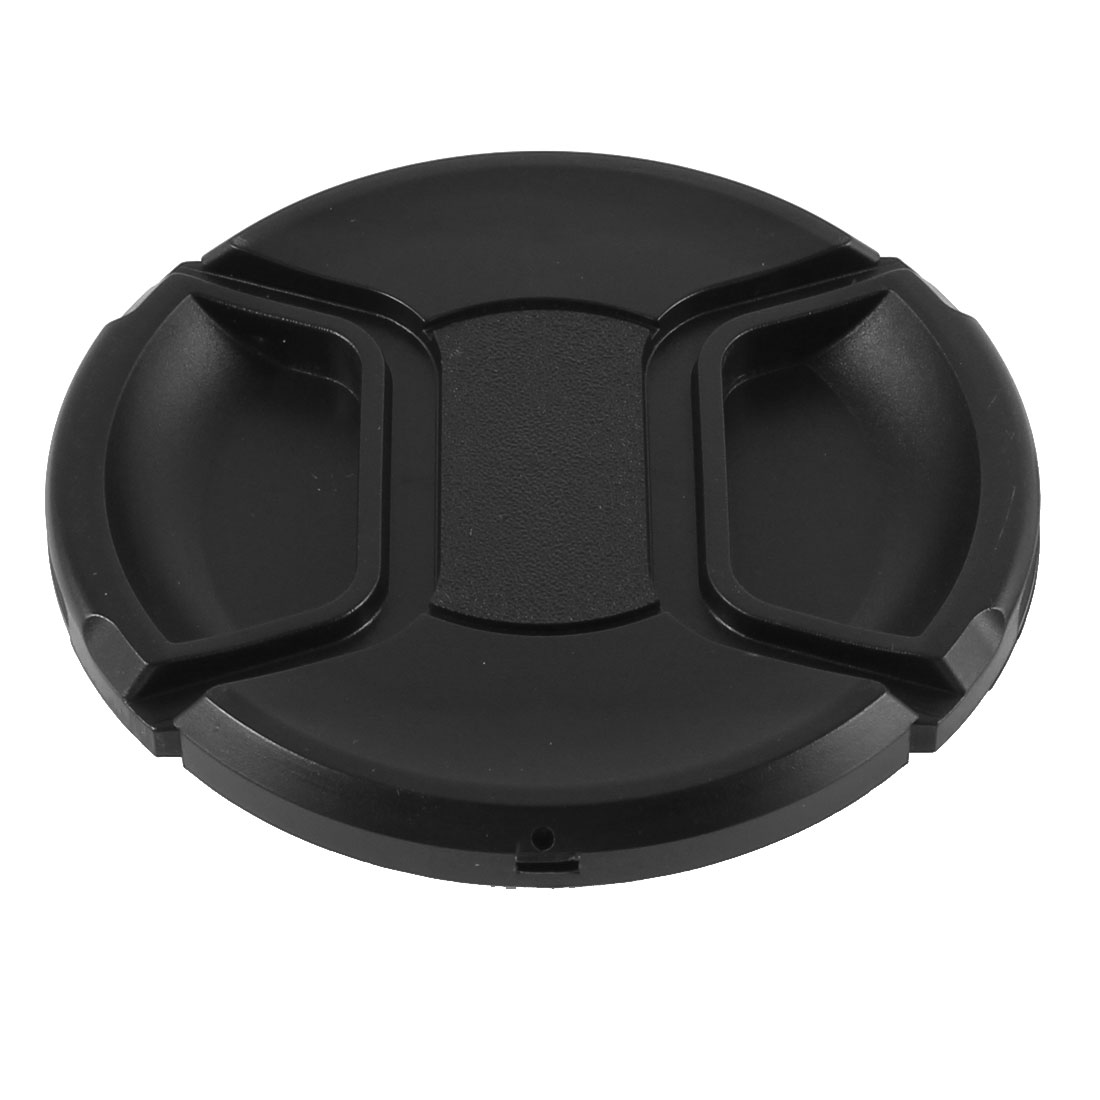 Univeral 82mm Dia Center Pinch Front Lens Cap for DSLR Camera